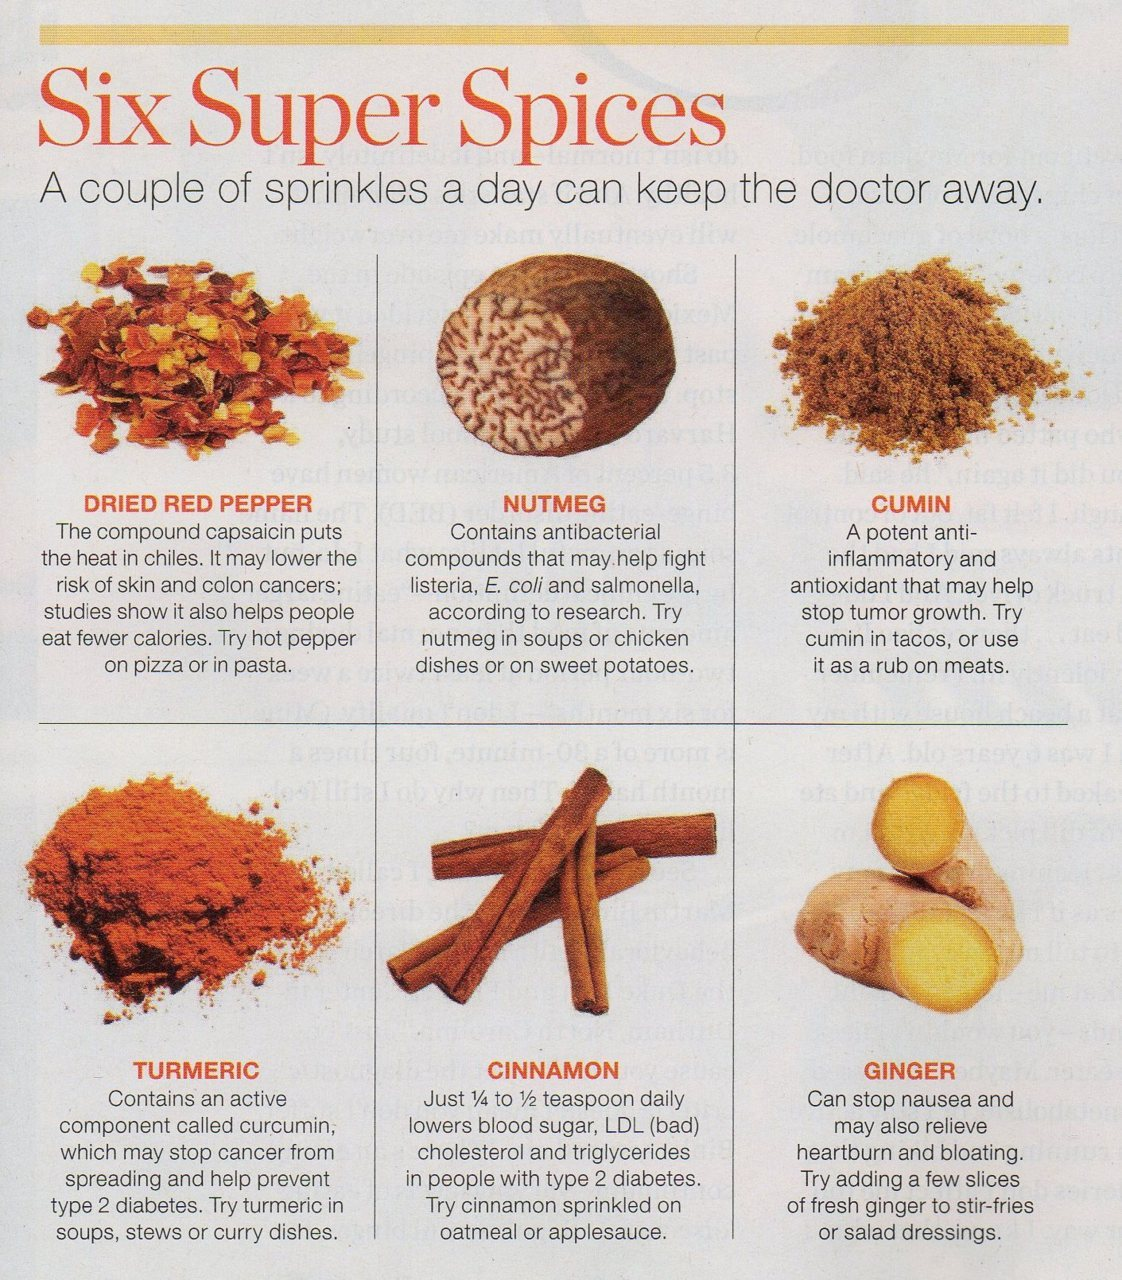 healthier-habits:  The benefits of different spices